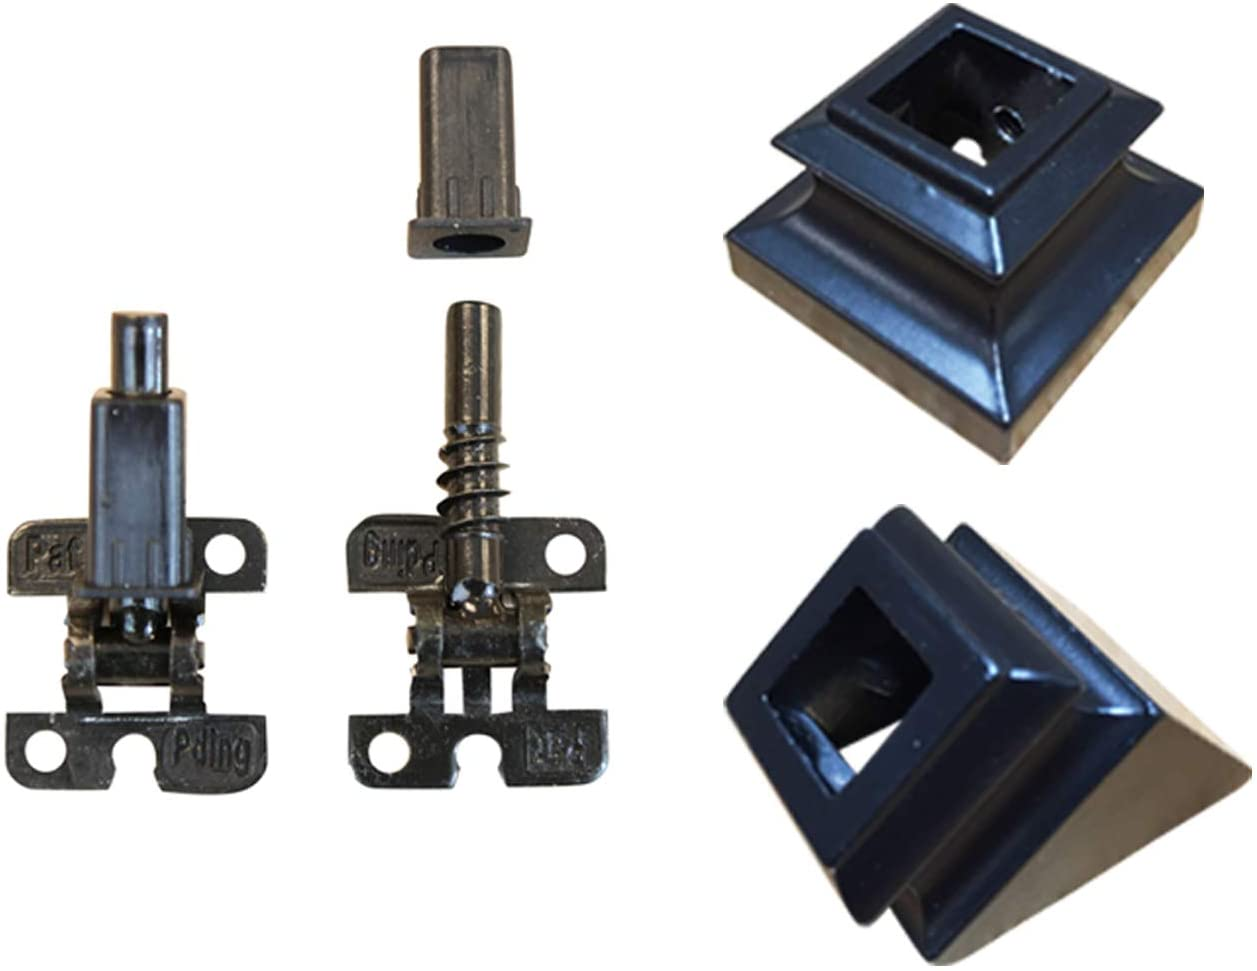 Adjustable Angle Connectors with Shoes for Easy Installation of 1/2